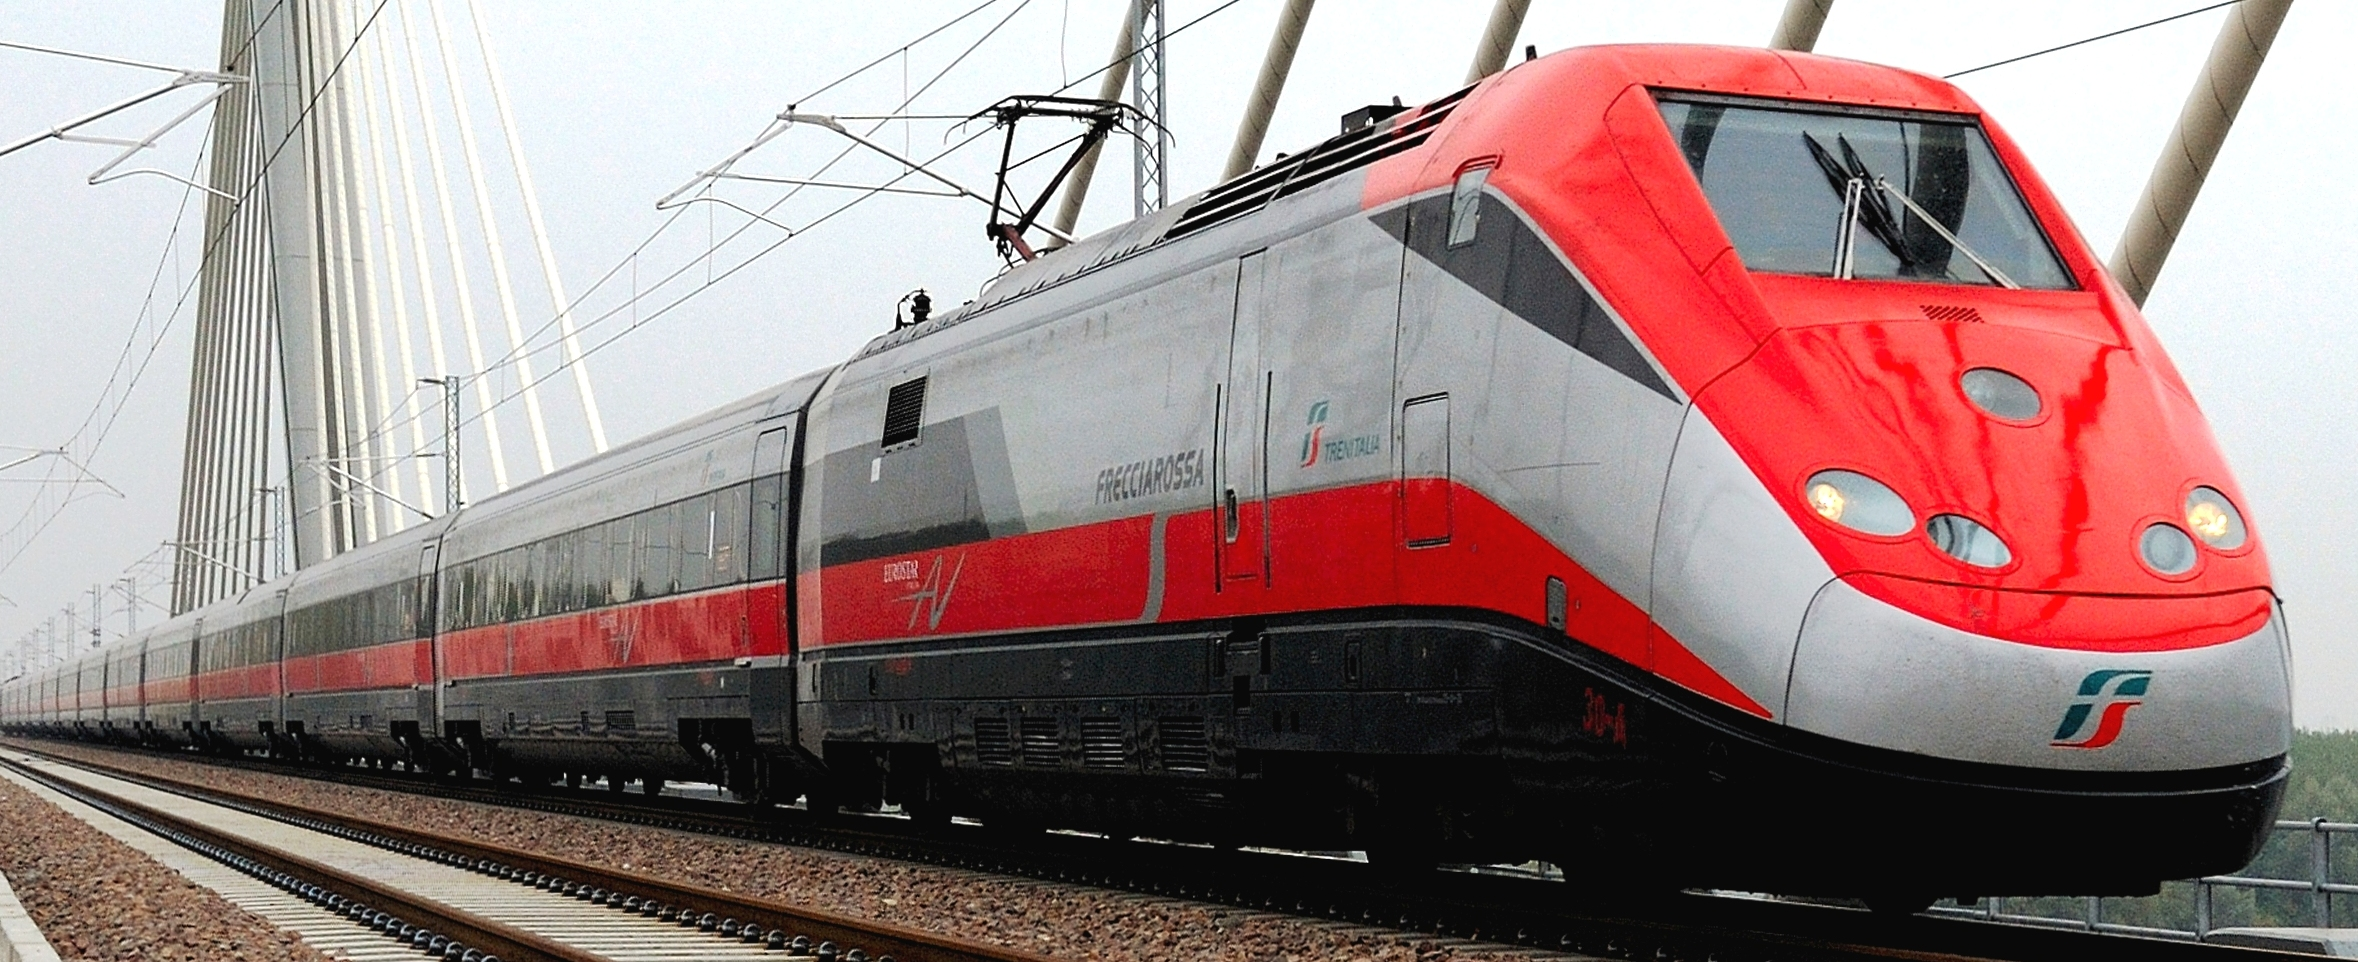 Trenitalia Frecciarossa 1000 train